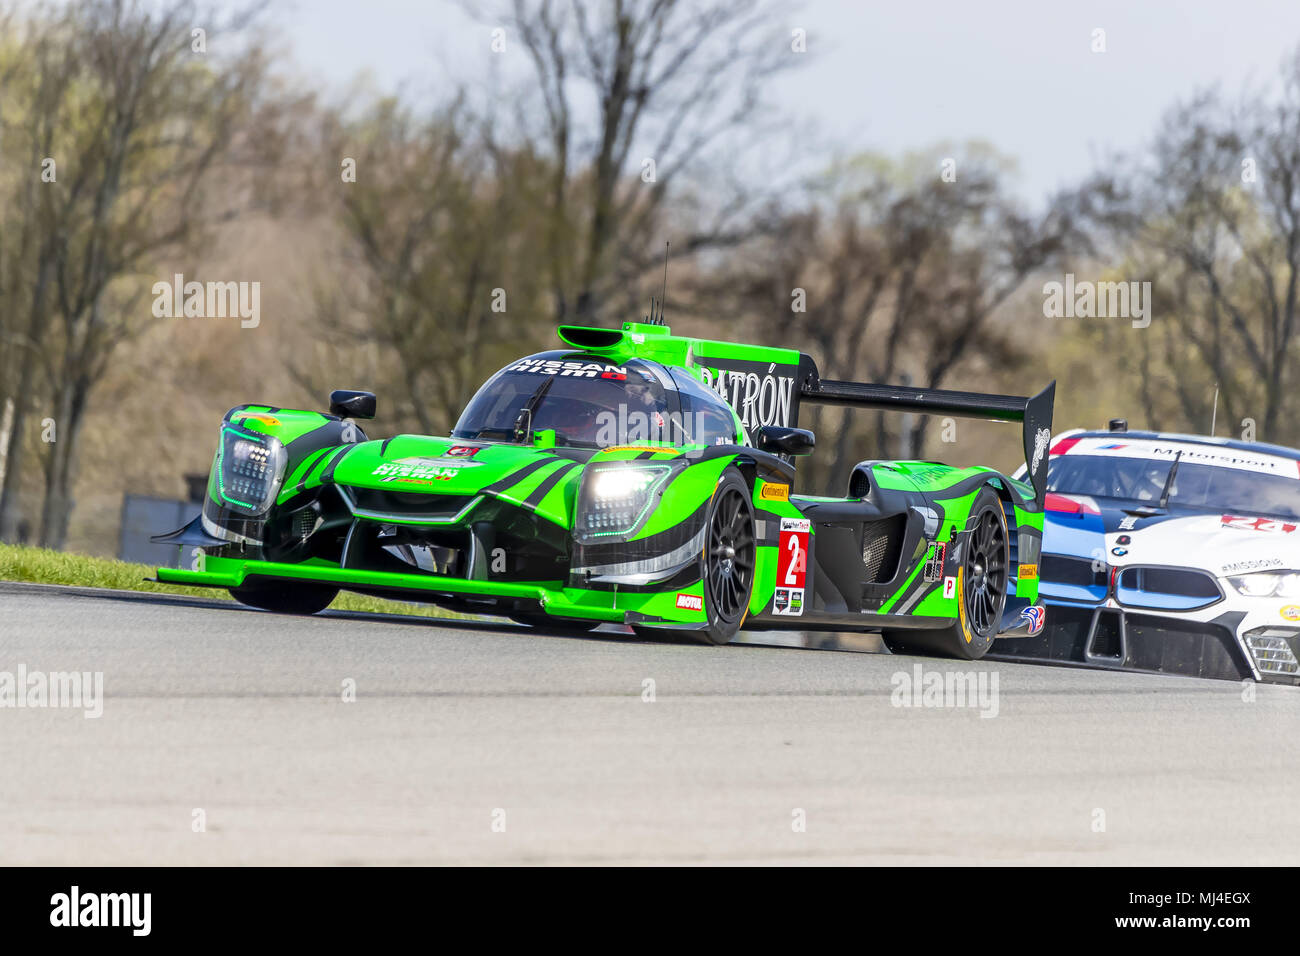 The Tequila Patron Nissan DPI Car Races Through The Turns At The Acura  Sports Car Challenge At Mid Ohio Sports Car Course Lexington, Ohio.